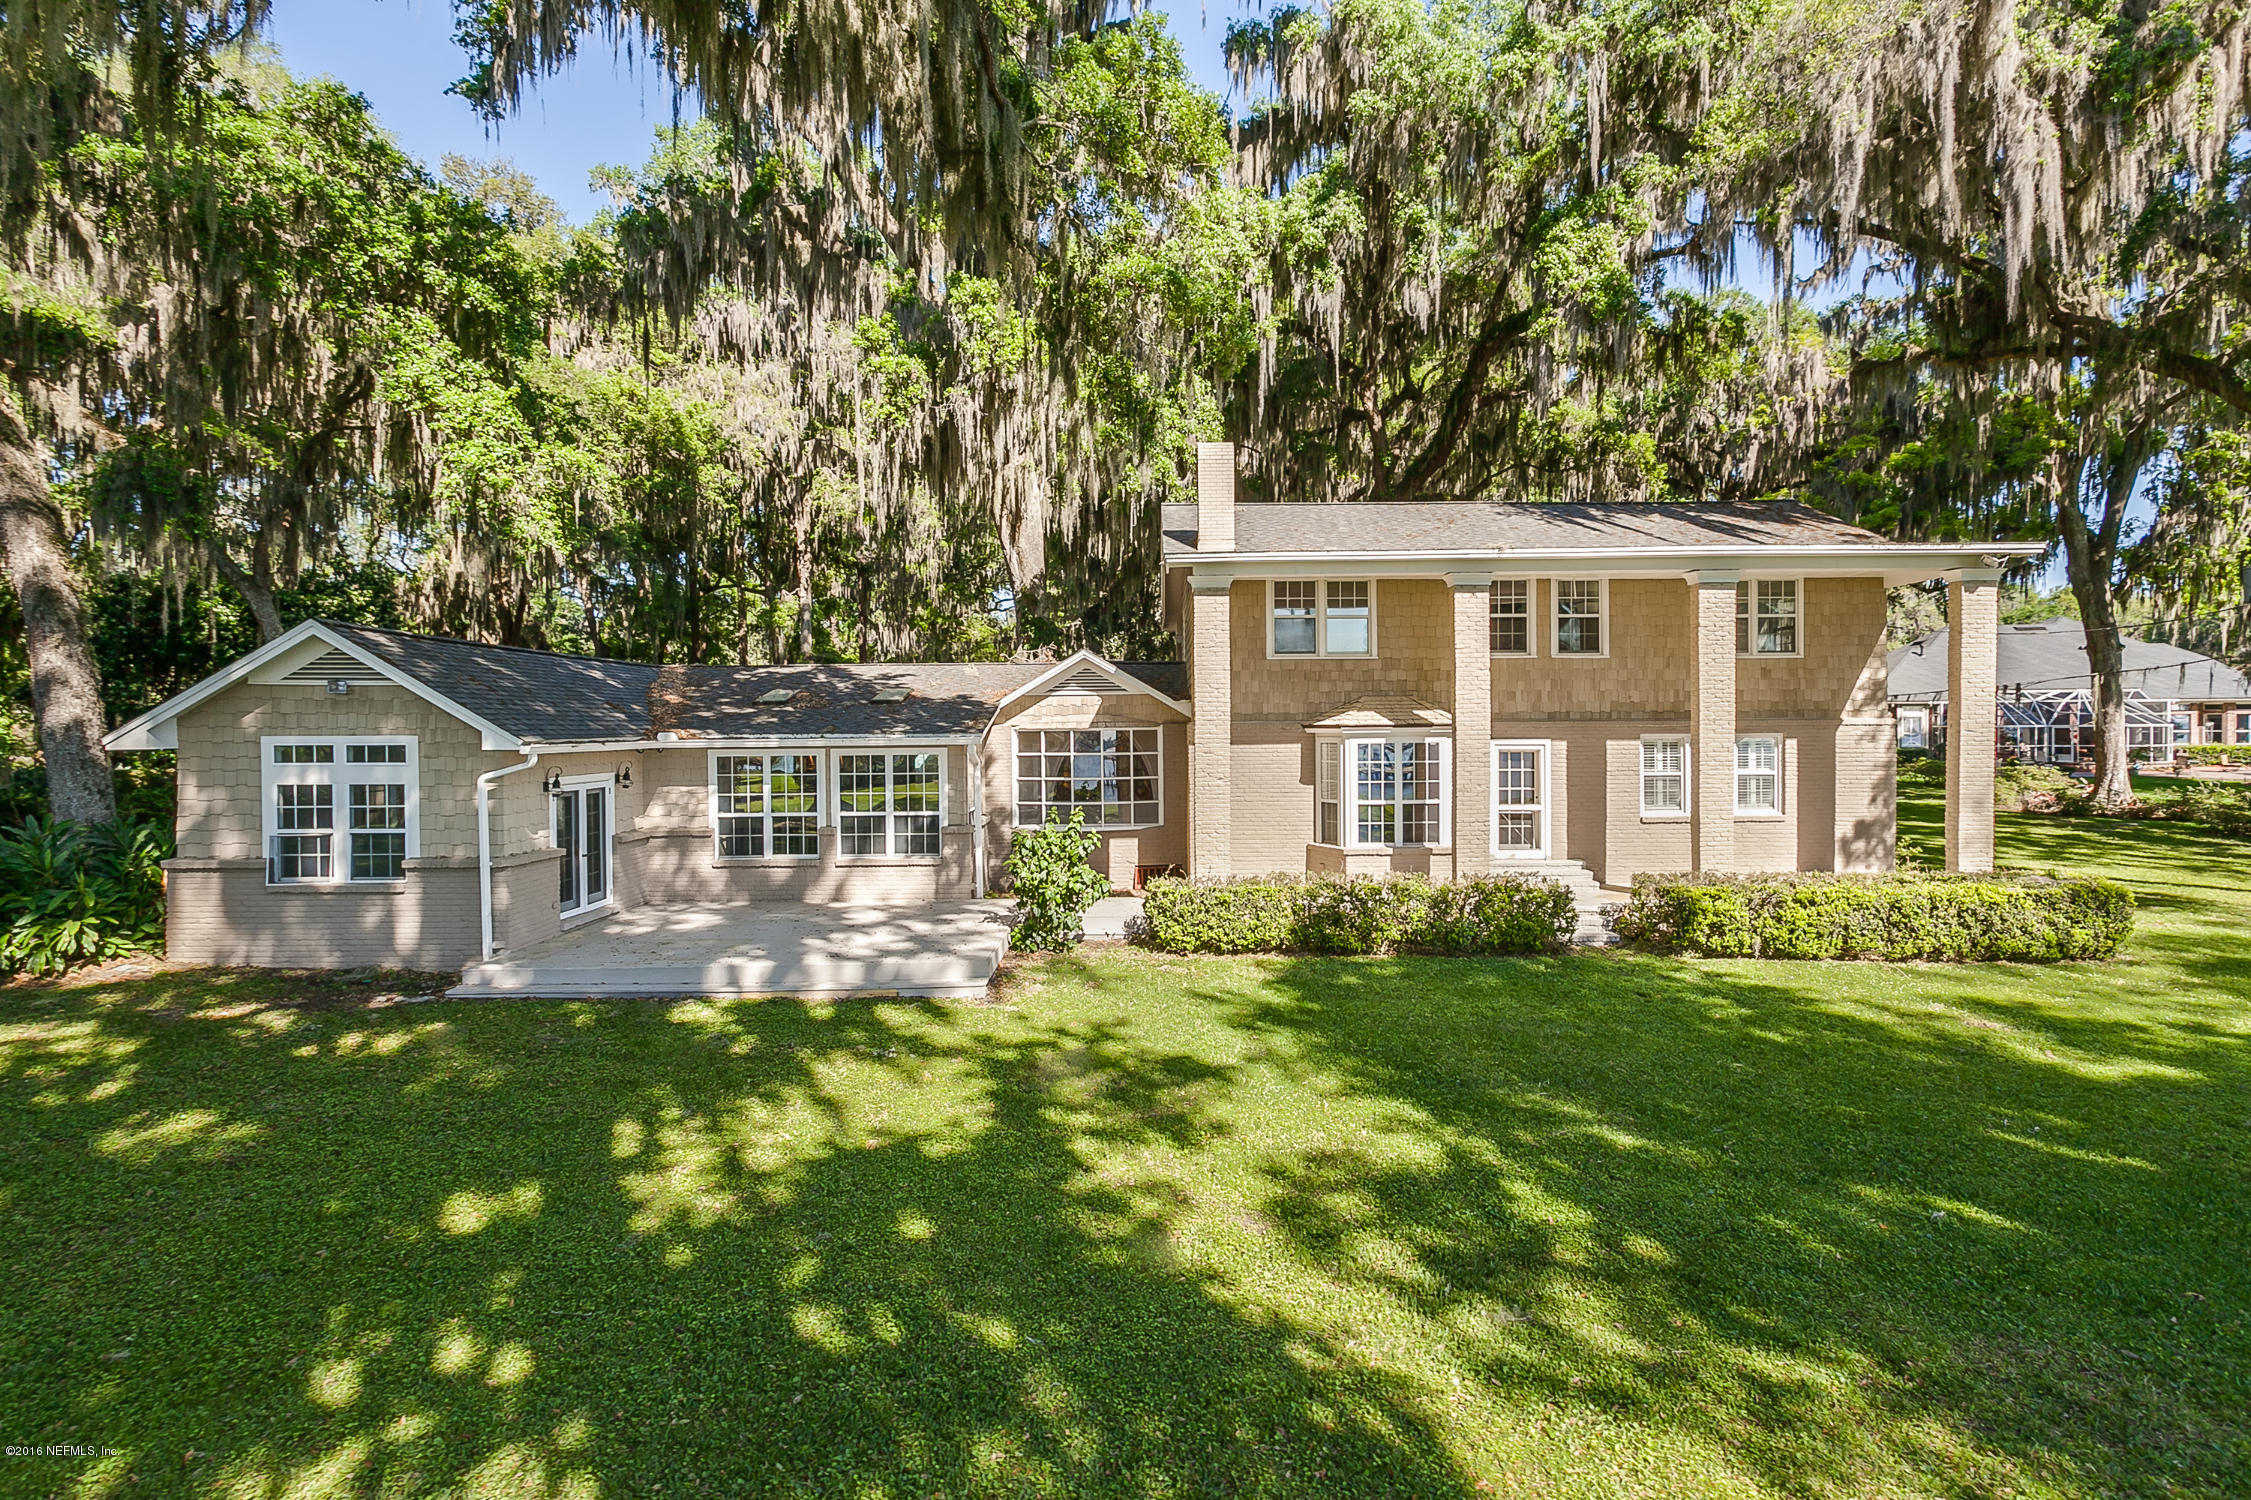 3528 LULLWATER, ORANGE PARK, FLORIDA 32073, 6 Bedrooms Bedrooms, ,4 BathroomsBathrooms,Residential - single family,For sale,LULLWATER,938949